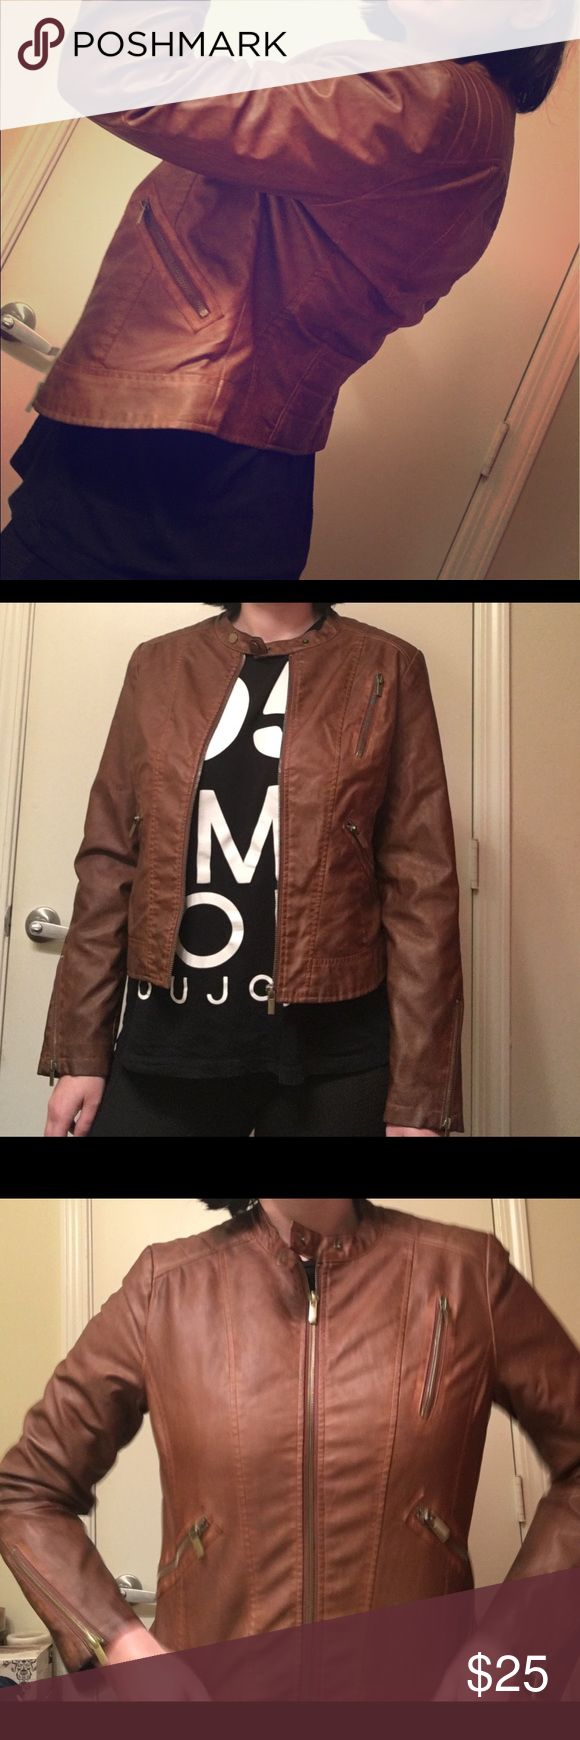 Brown faux leather jacket It's new. Forever 21 Jackets & Coats